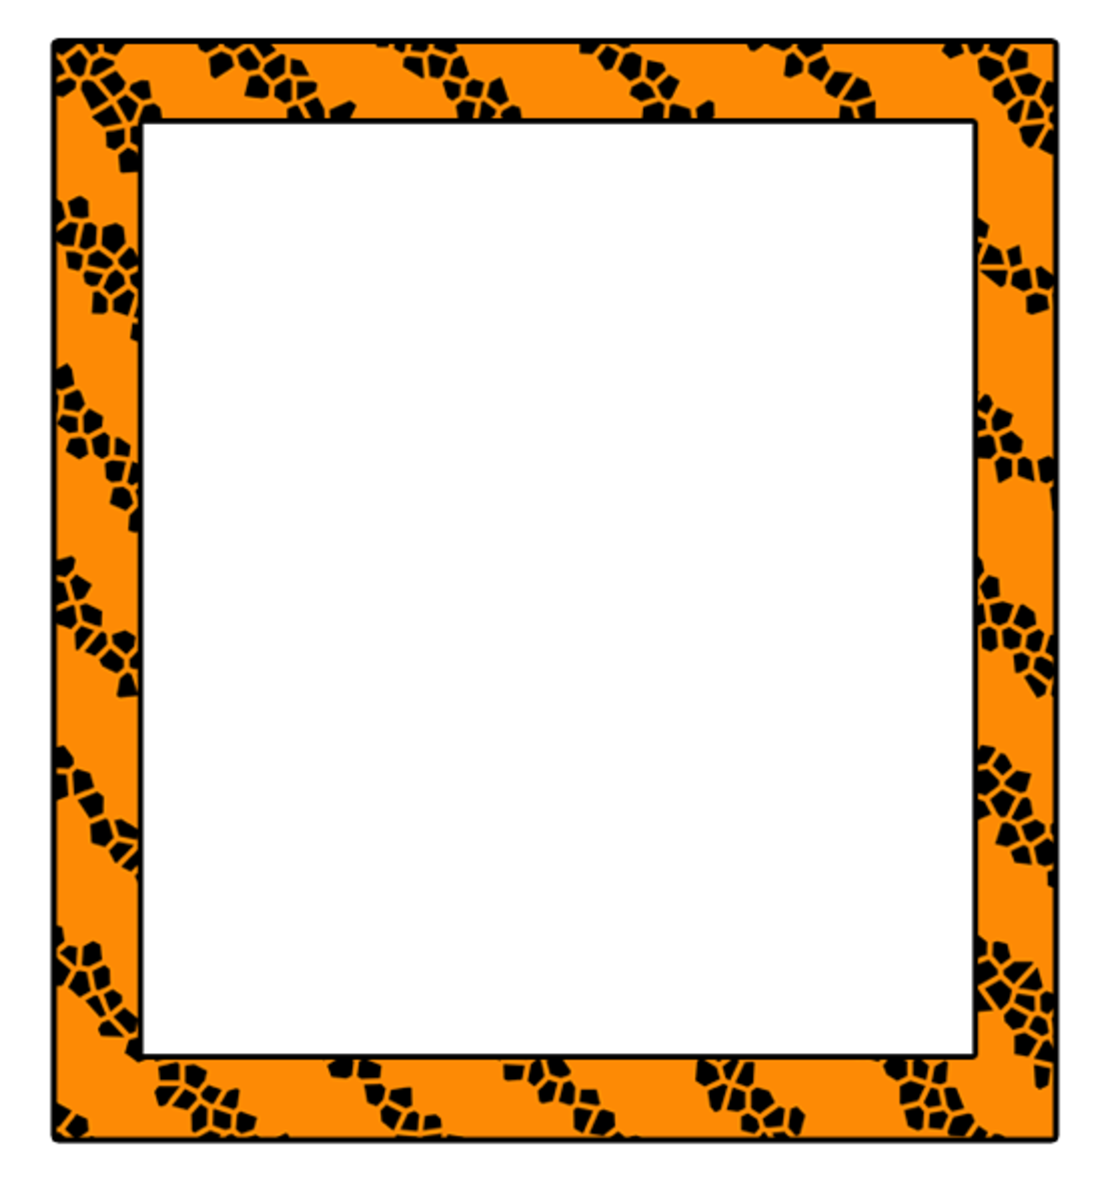 Clip art frame with orange and black Halloween colors.